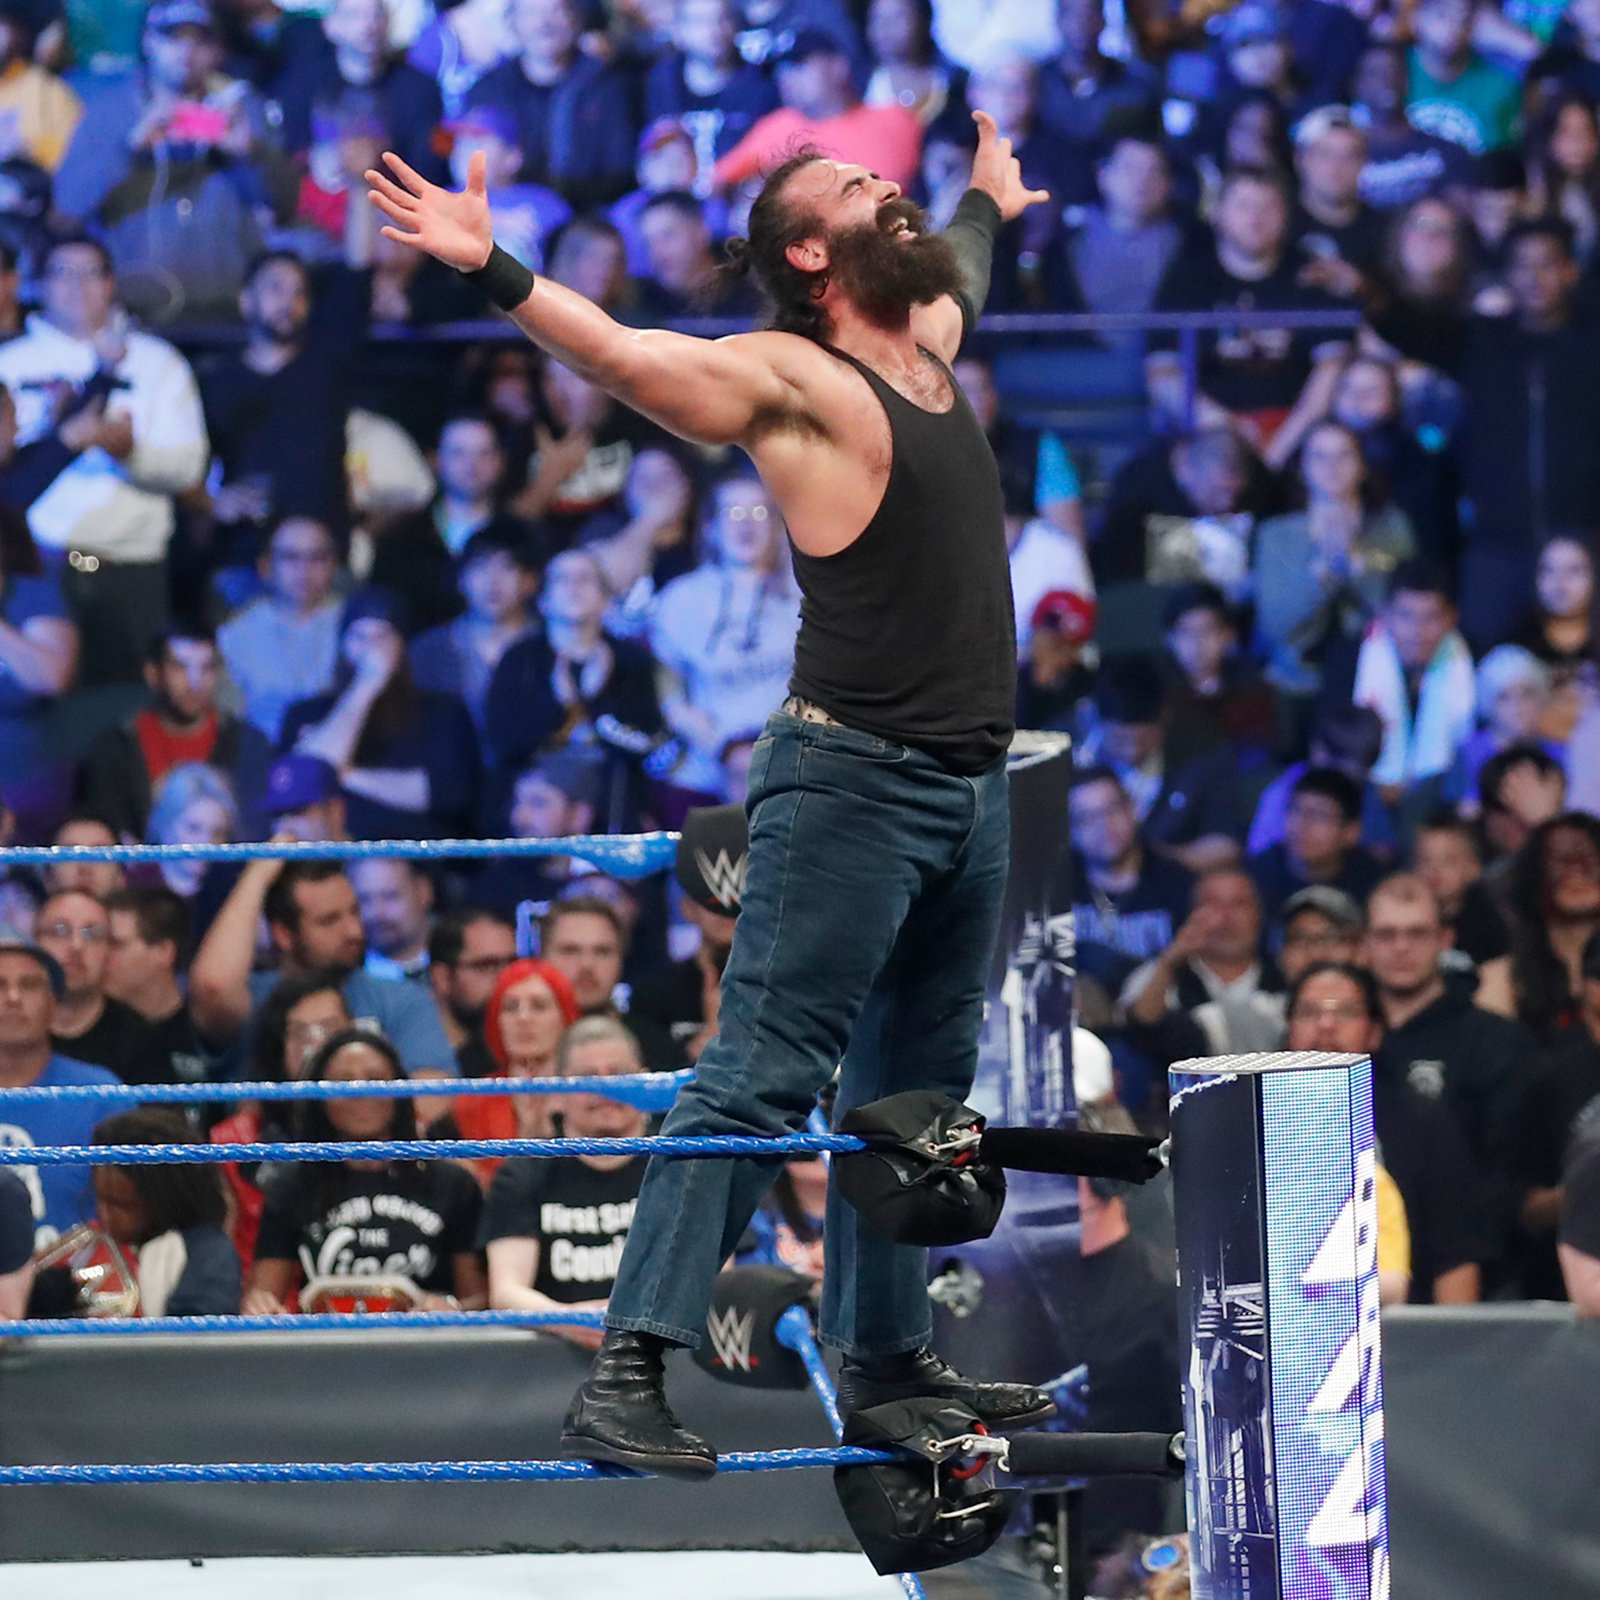 Luke Harper pulls away with a hard-fought victory in Chi-Town.